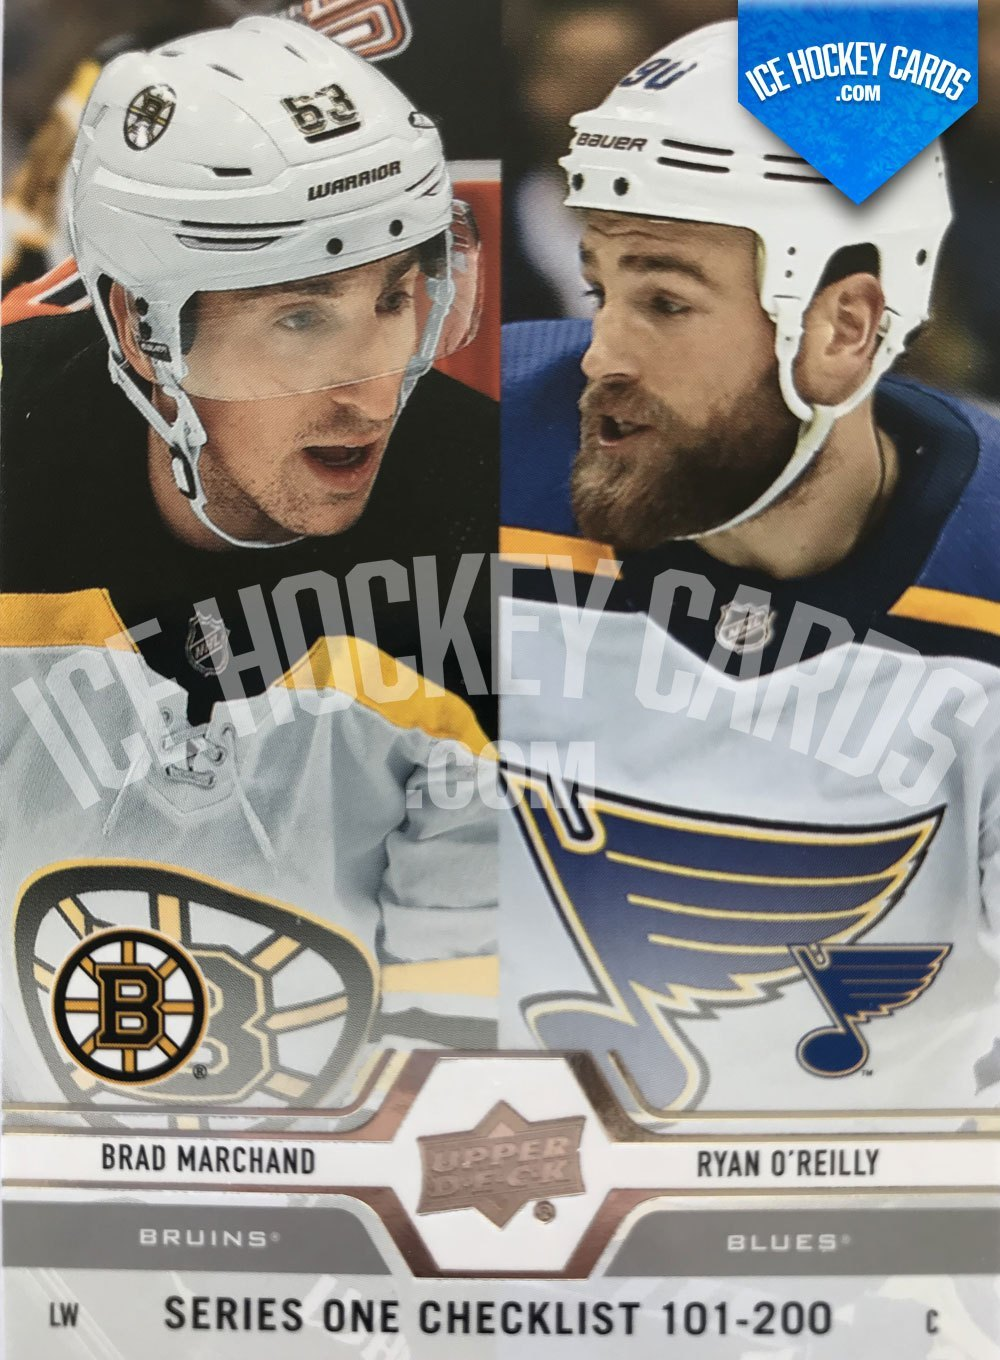 Upper Deck - 19-20 - Series 1 Checklist 101-200 - Brad Marchand & Ryan O'Reilly